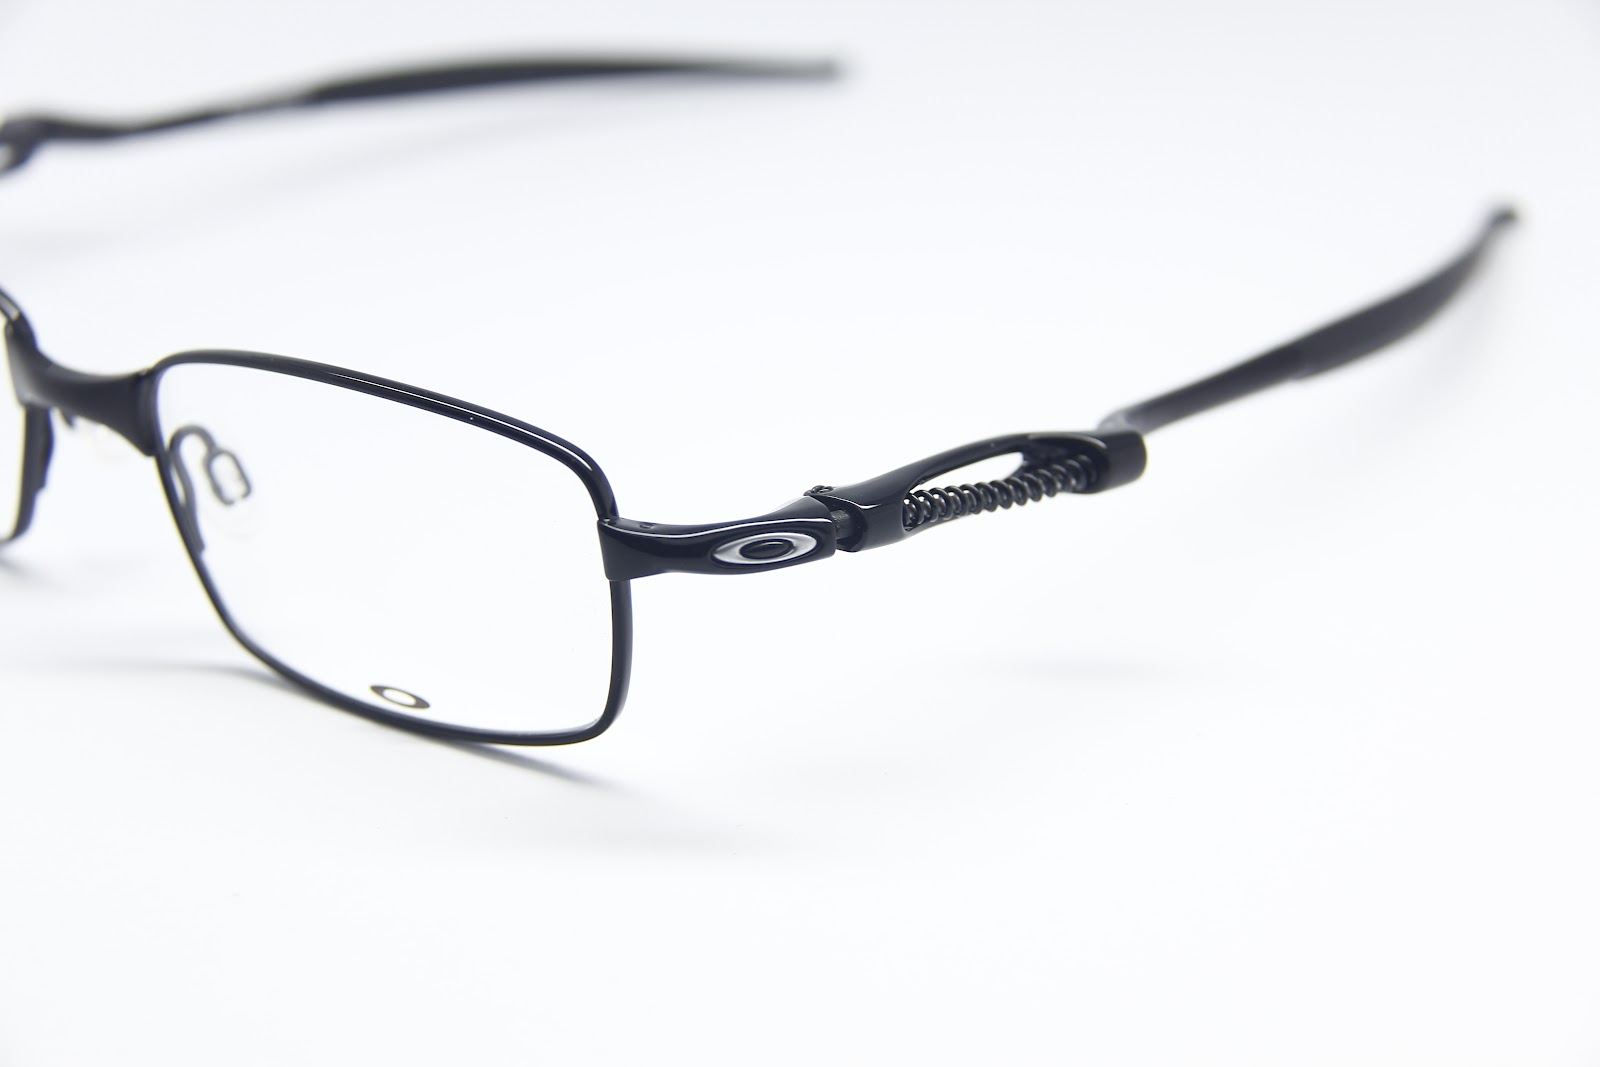 oakley singapore prescription glasses oakley coilover